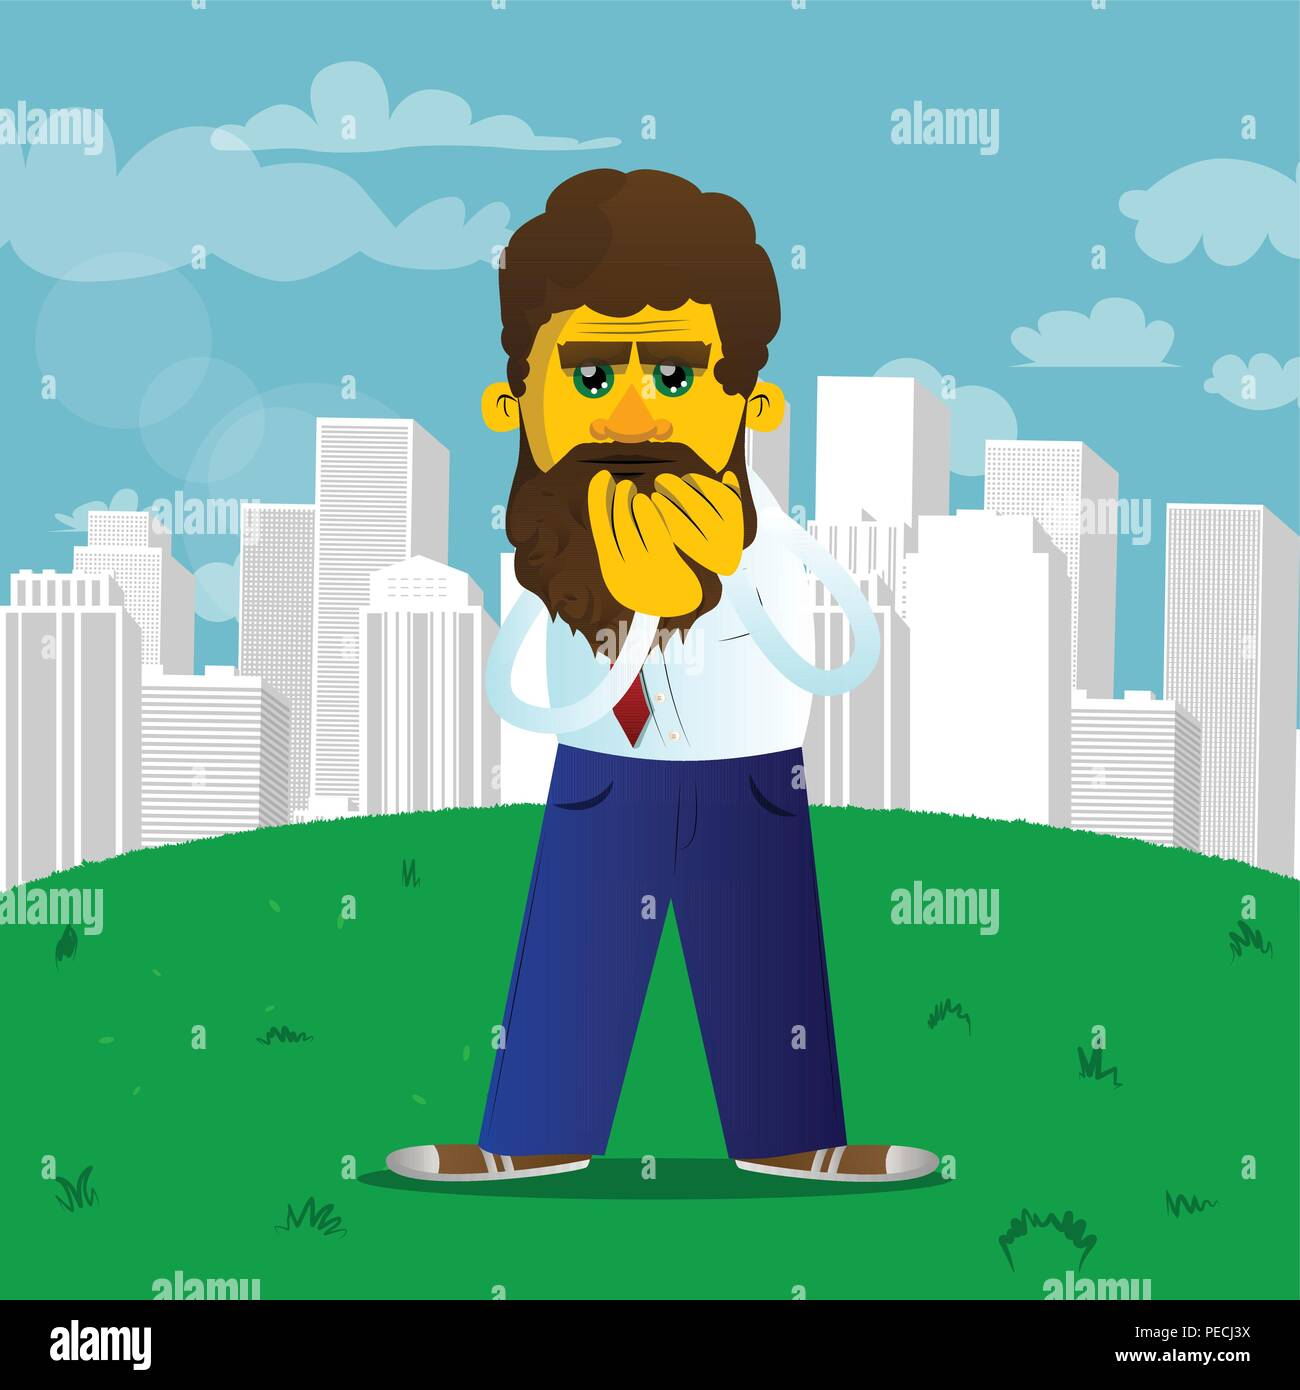 Yellow man with hands over mouth. Vector cartoon illustration. - Stock Image